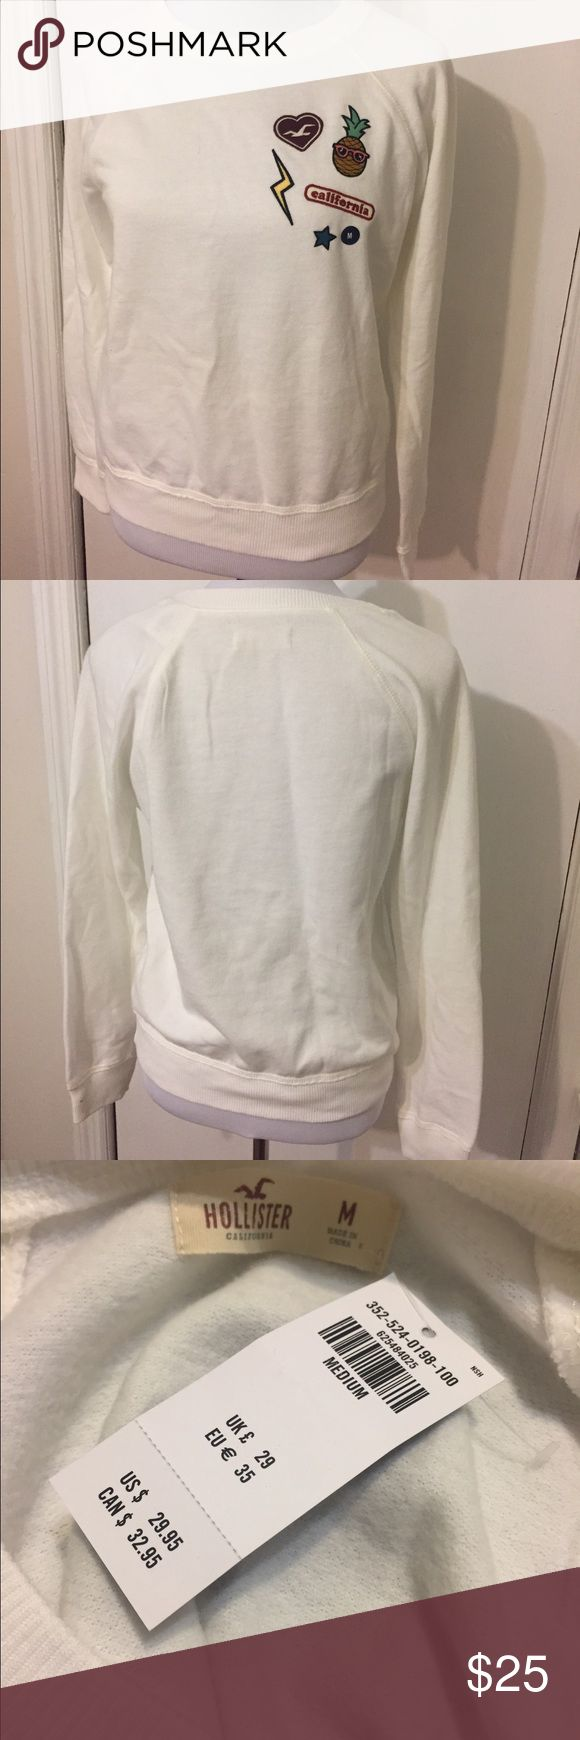 HOLLISTER CALIFORNIA SWEATER size M HOLLISTER CALIFORNIA SWEATER size M. Brand new with tag. This is a cute cozy sweater, the color is more like a bone color of-white Hollister Sweaters